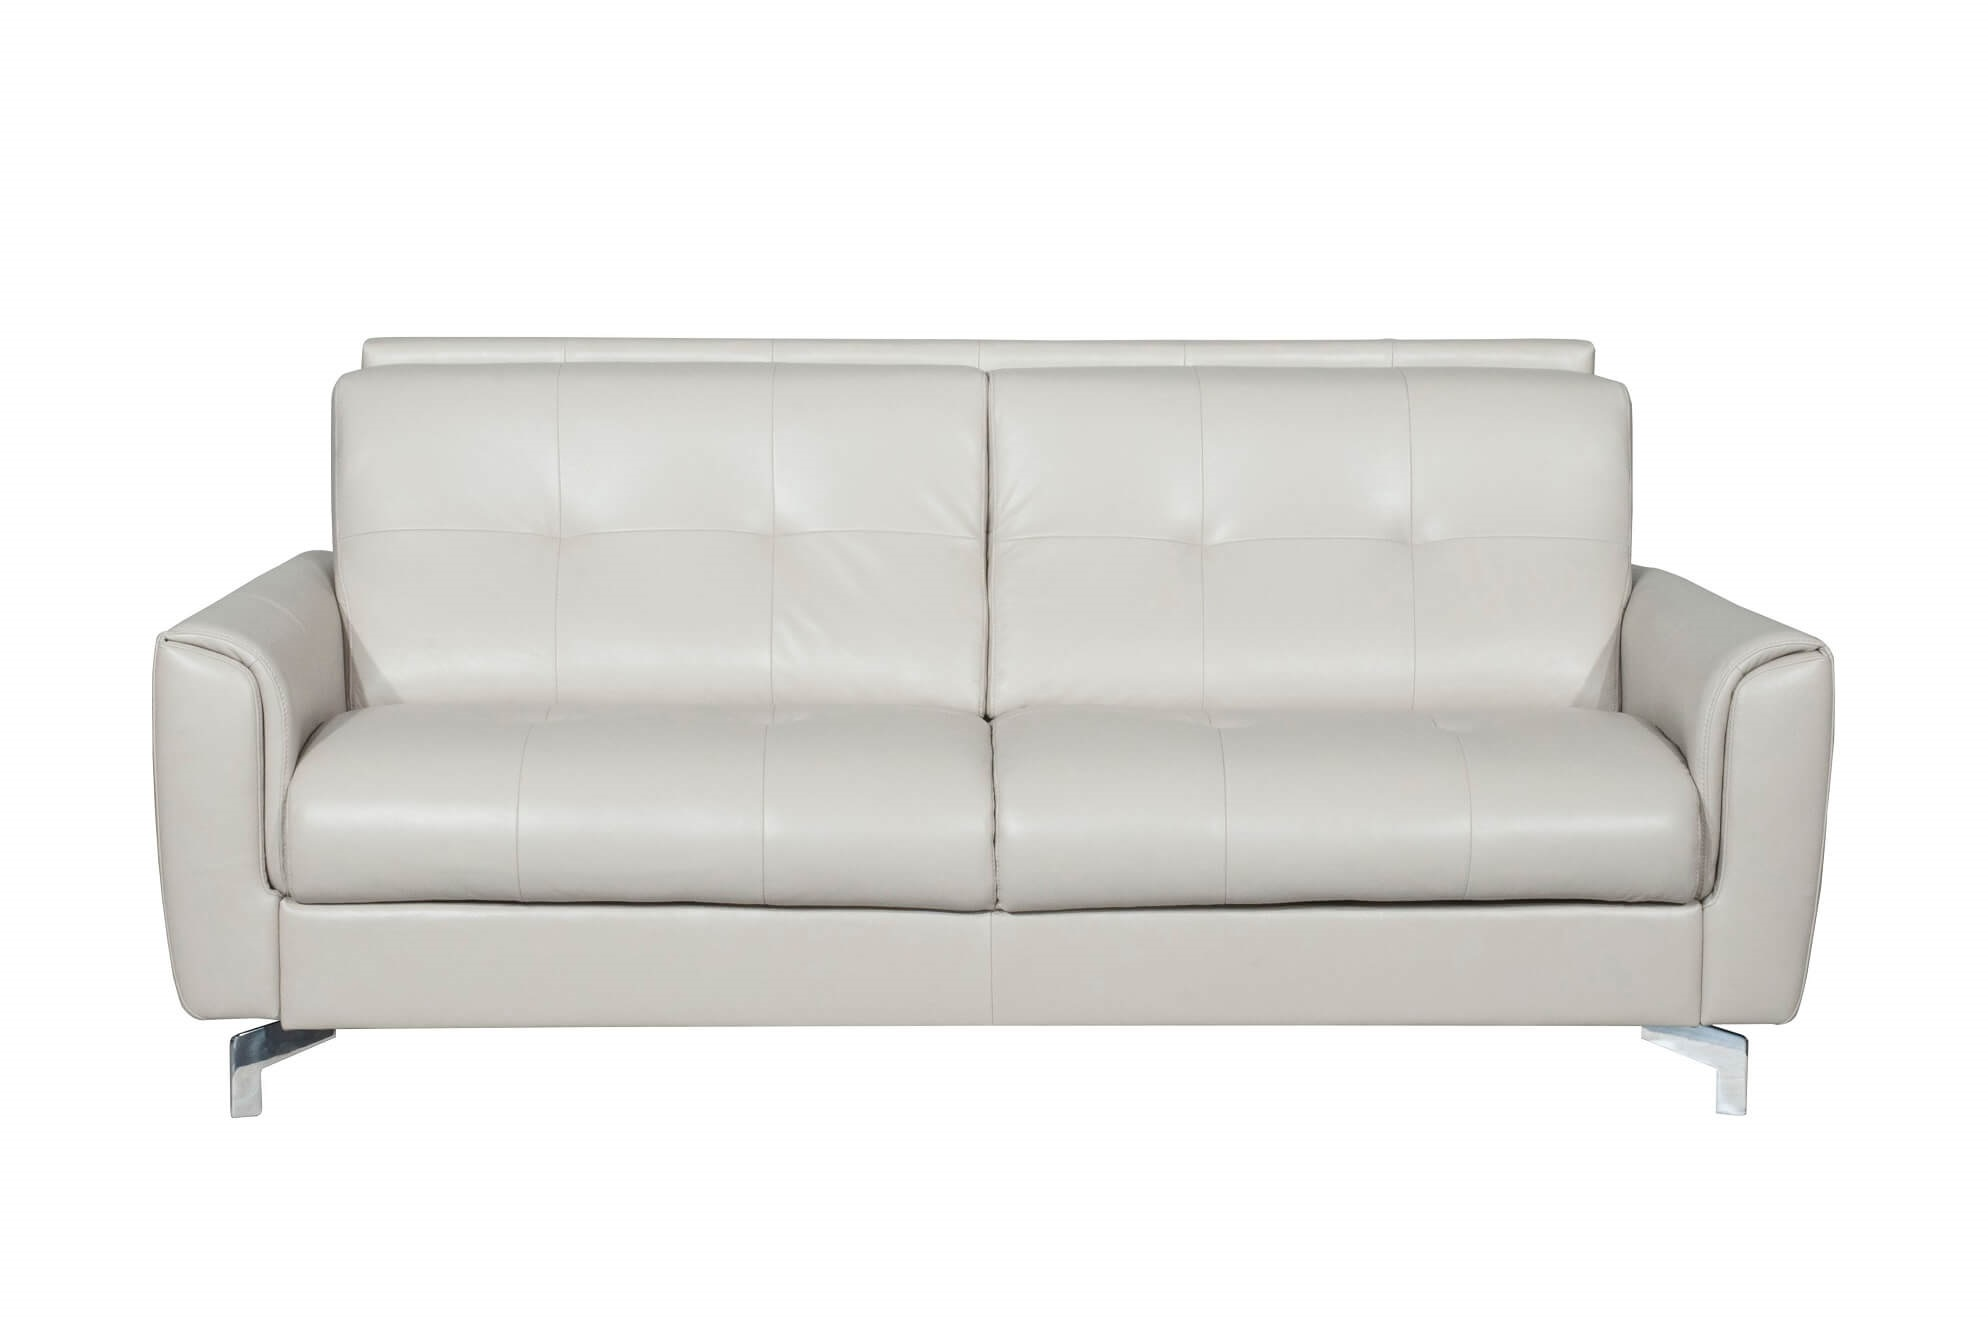 Benares Beige Italian Leather Sofa Bed - Made in Italy